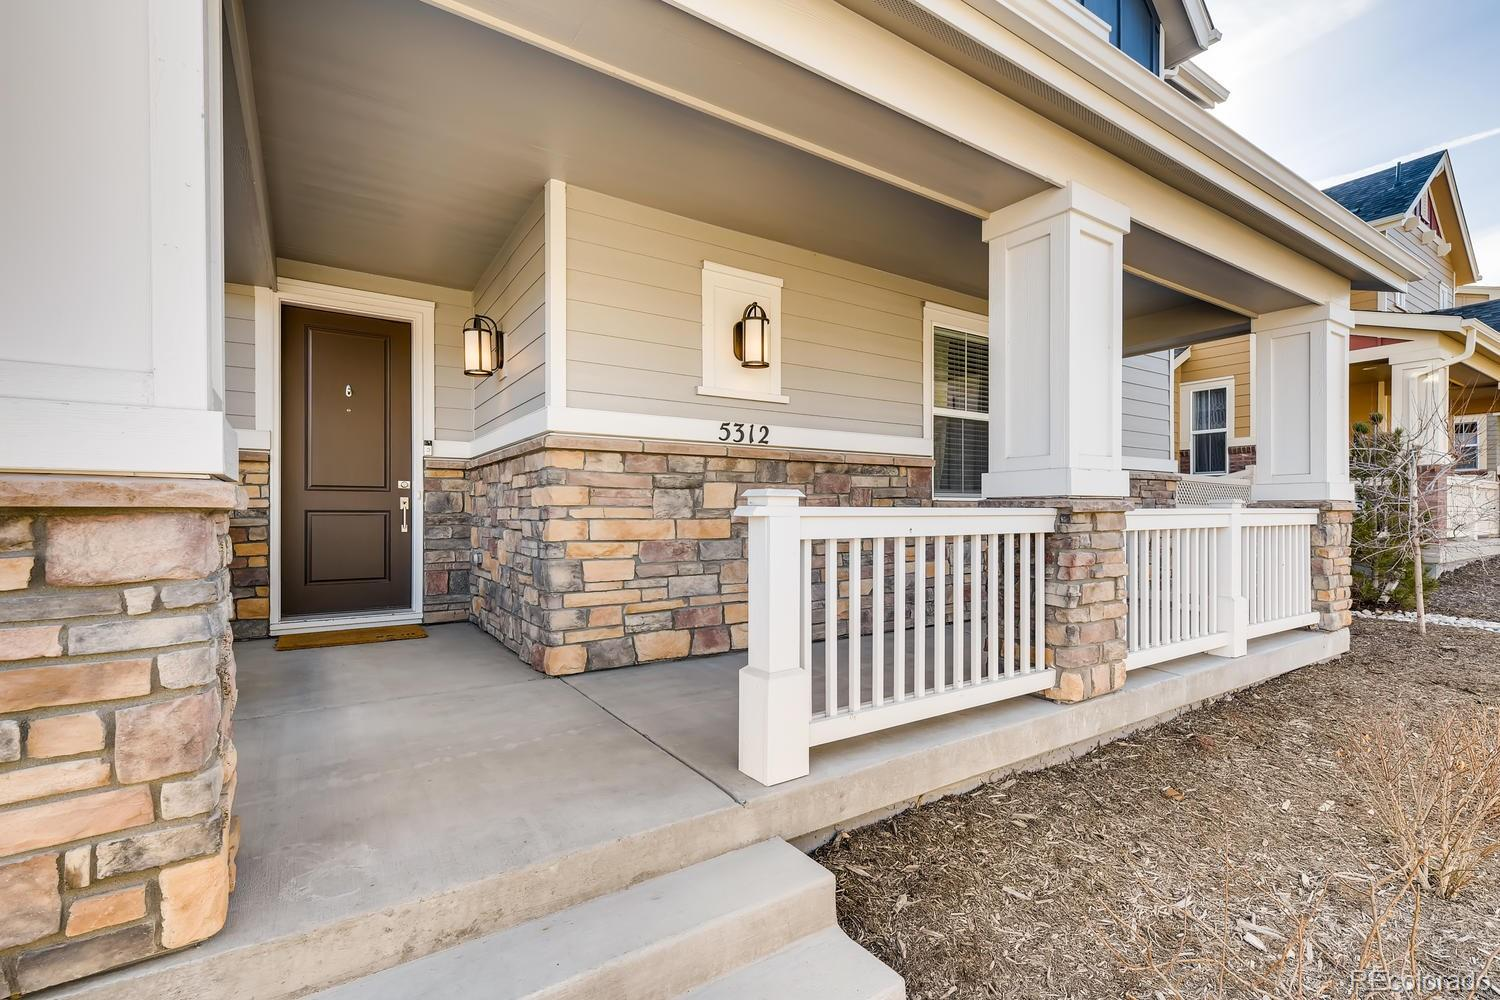 MLS# 1631314 - 4 - 5312 W 73rd Place, Westminster, CO 80003